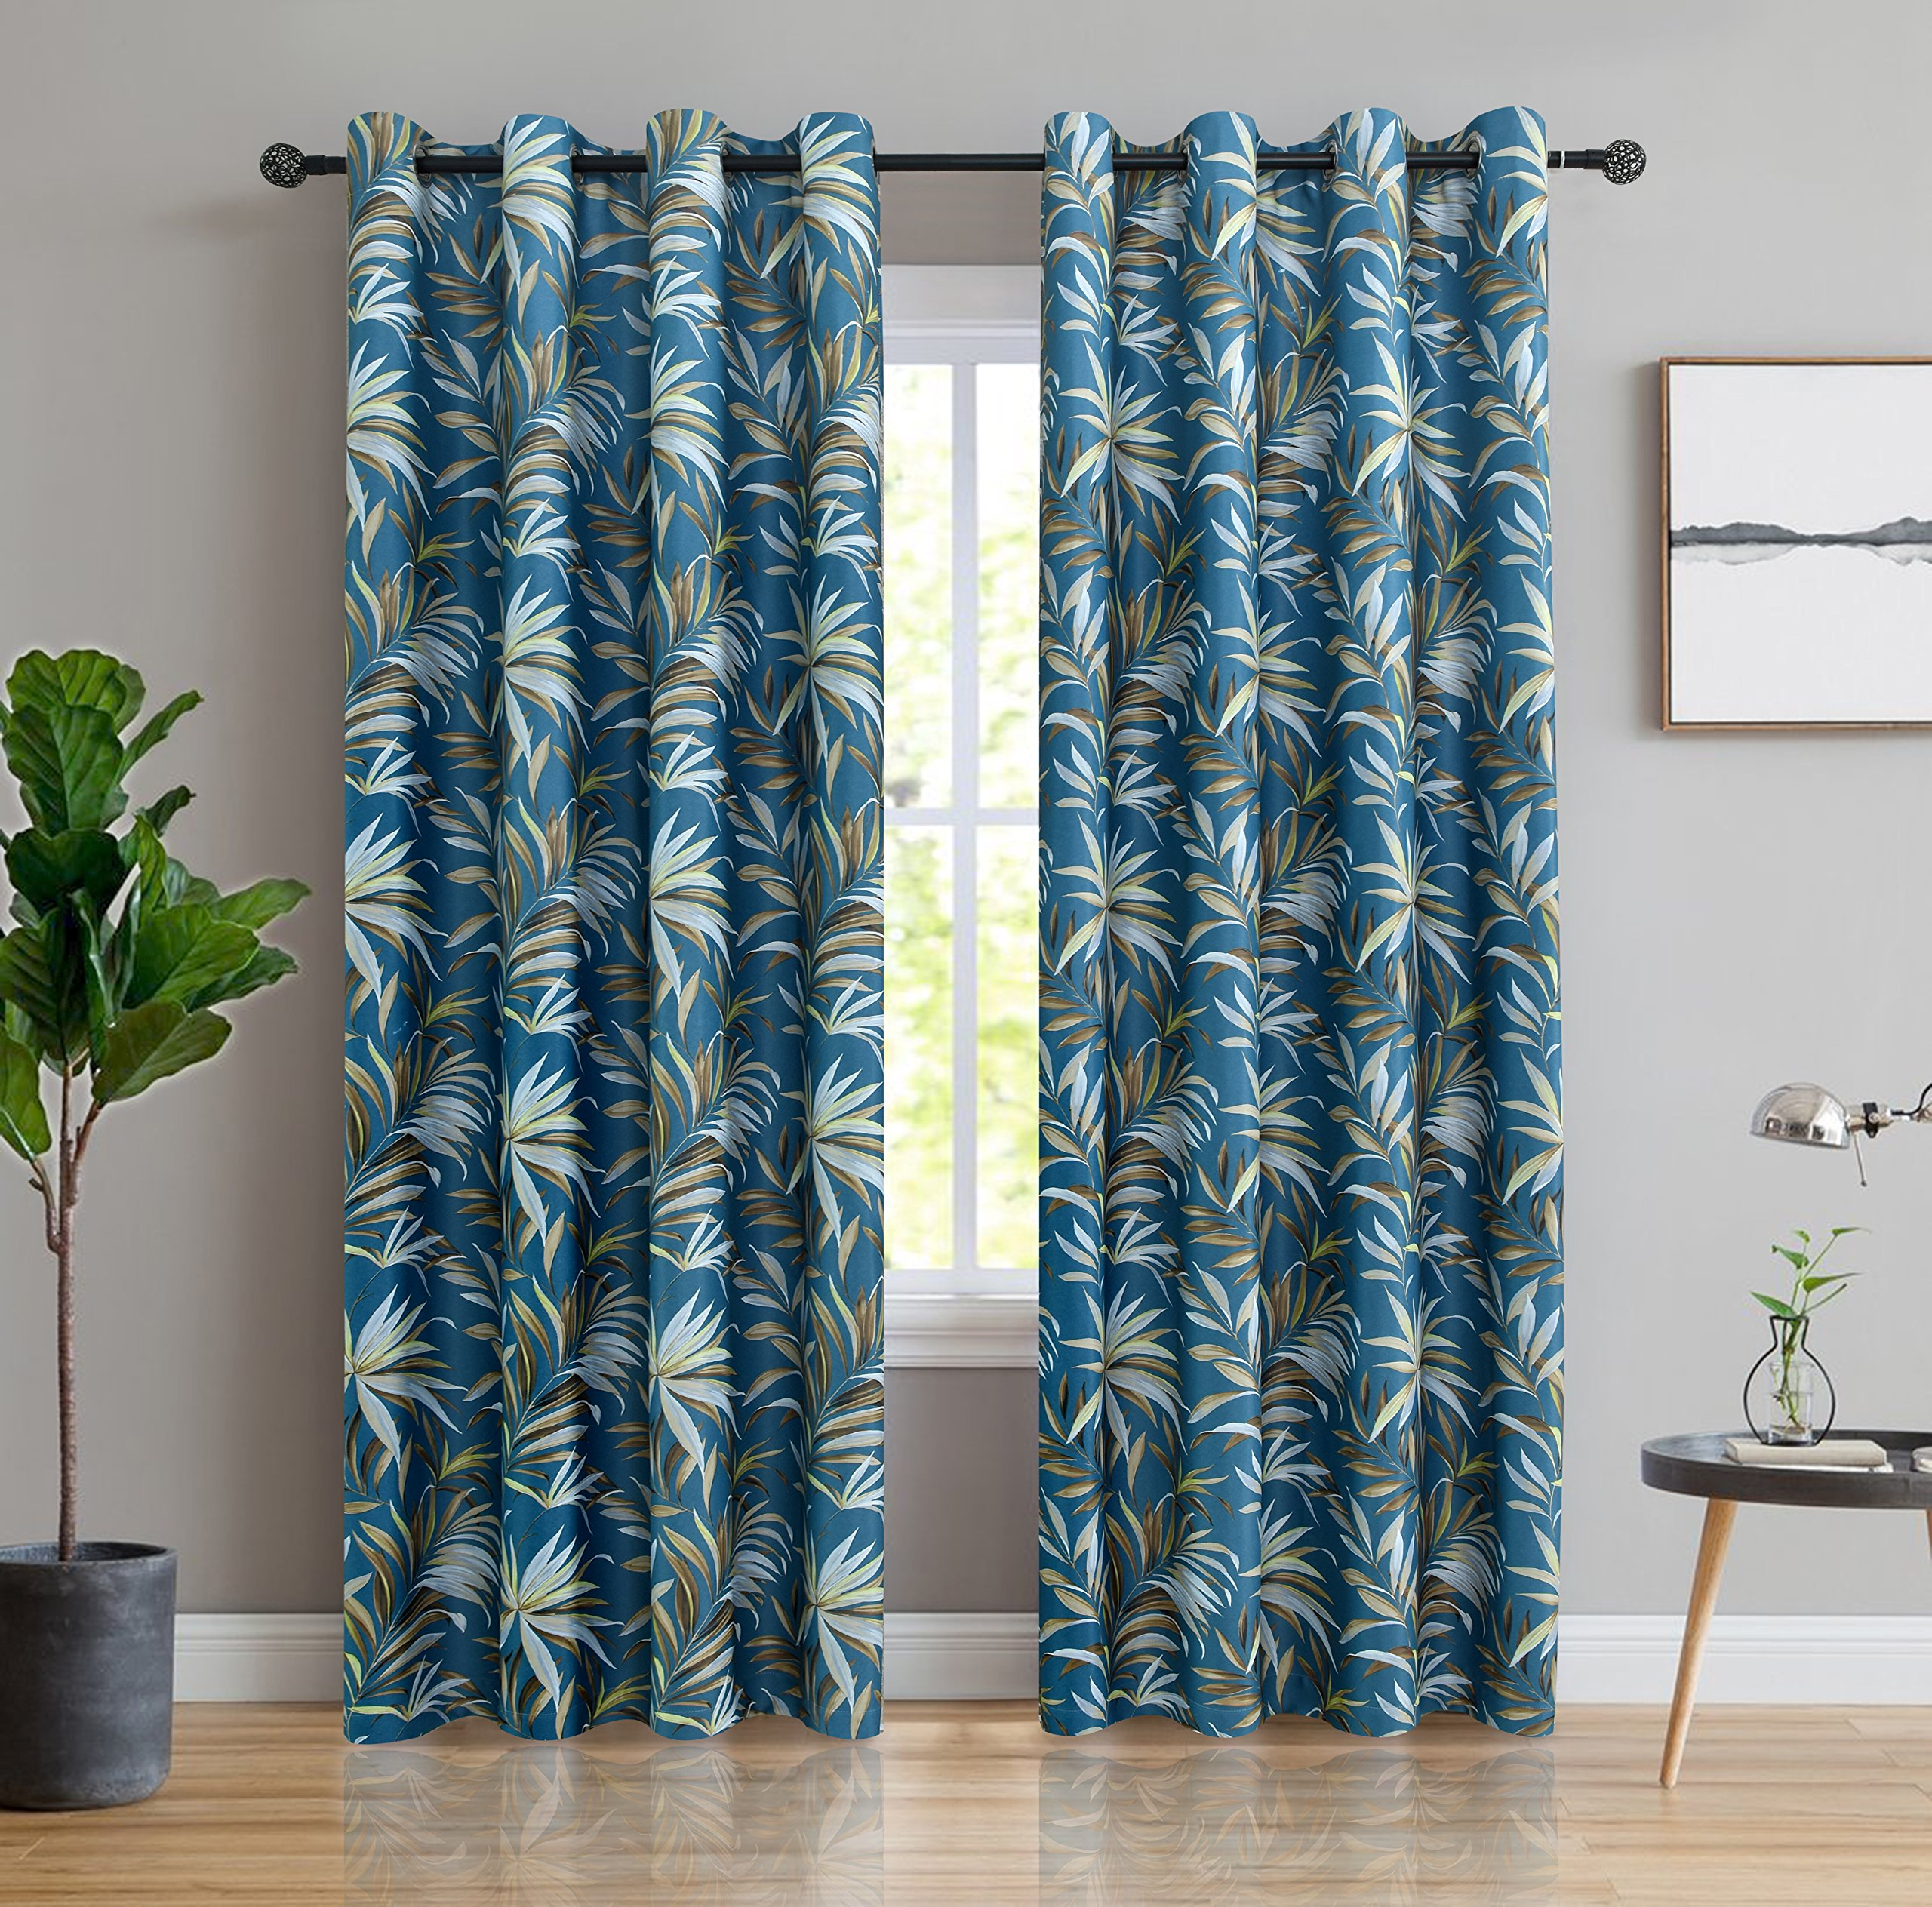 ITEXTILOGIE Blackout Grommet Print Curtains for Bedroom Room Darkening Thermal Insulated Curtain Noise Reducing Panels Window Draperies for living room(2 Panels,53x63 inch Each Panel,Bamboo)